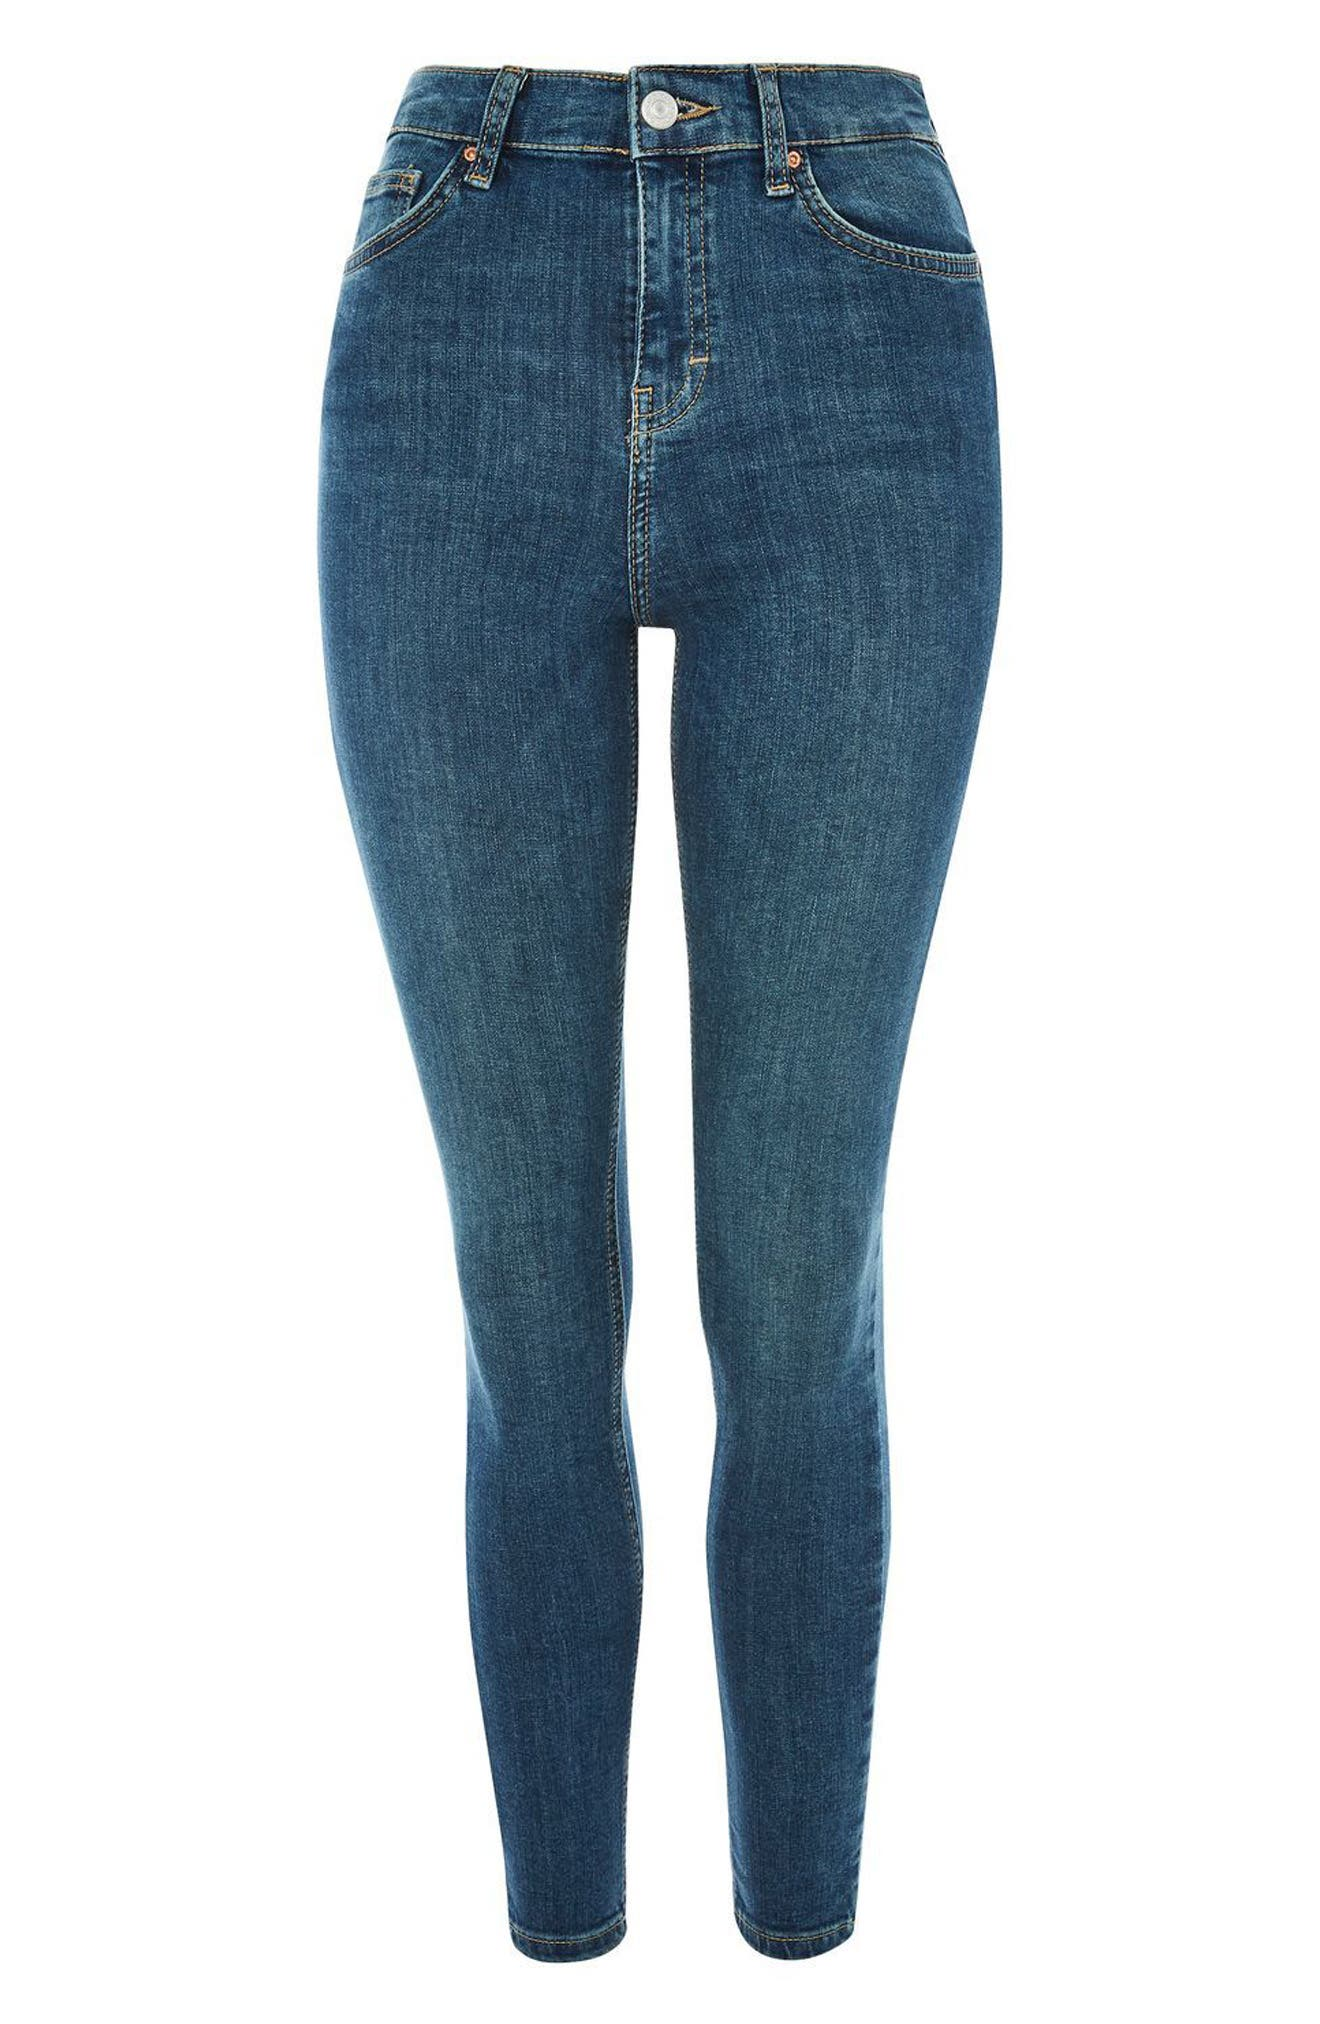 Jamie High Waist Crop Skinny Jeans,                             Alternate thumbnail 5, color,                             400